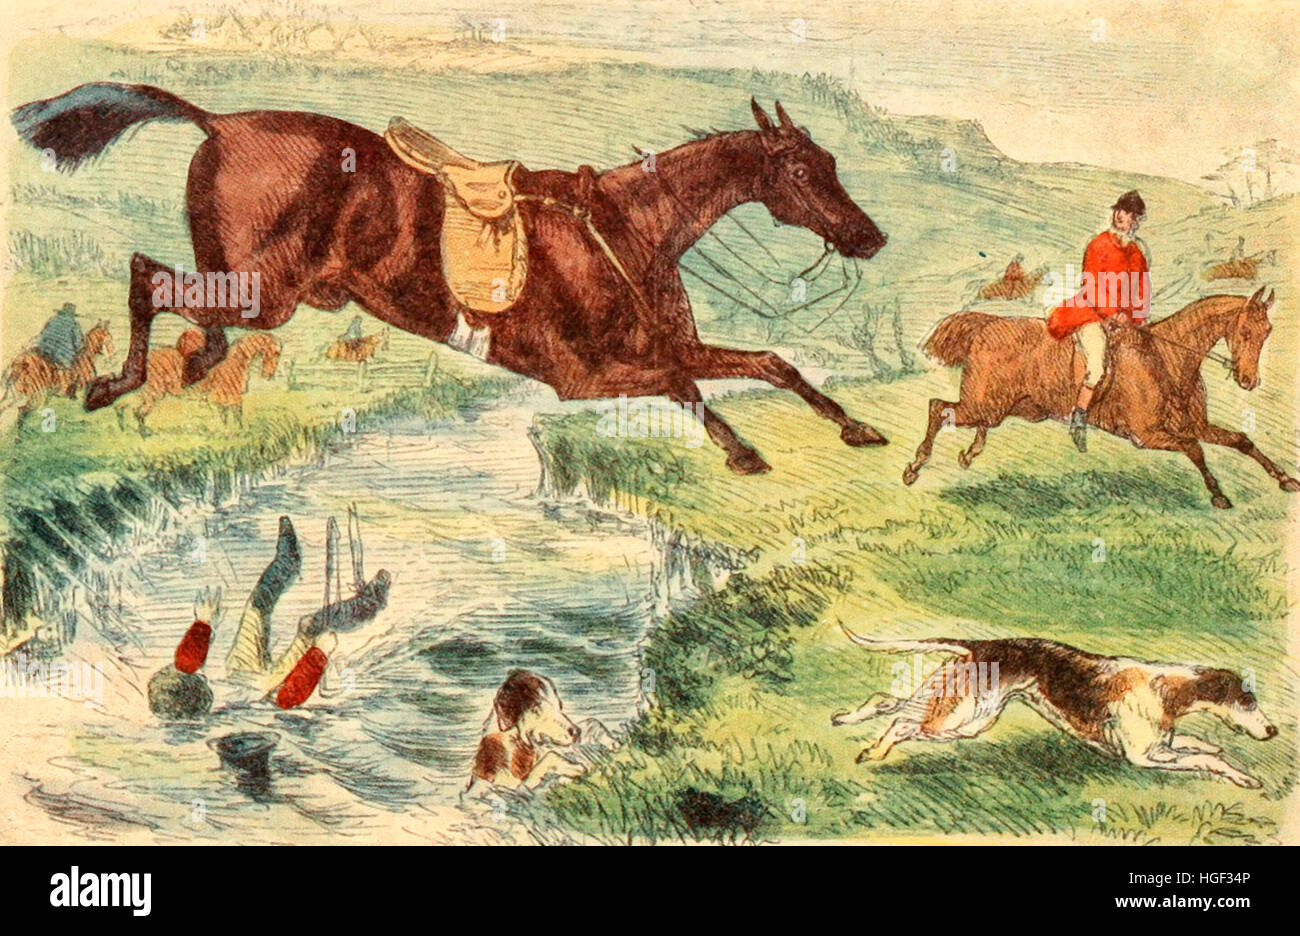 The Humours of Fox Hunting. English fox hunting in the 1800s - Stock Image